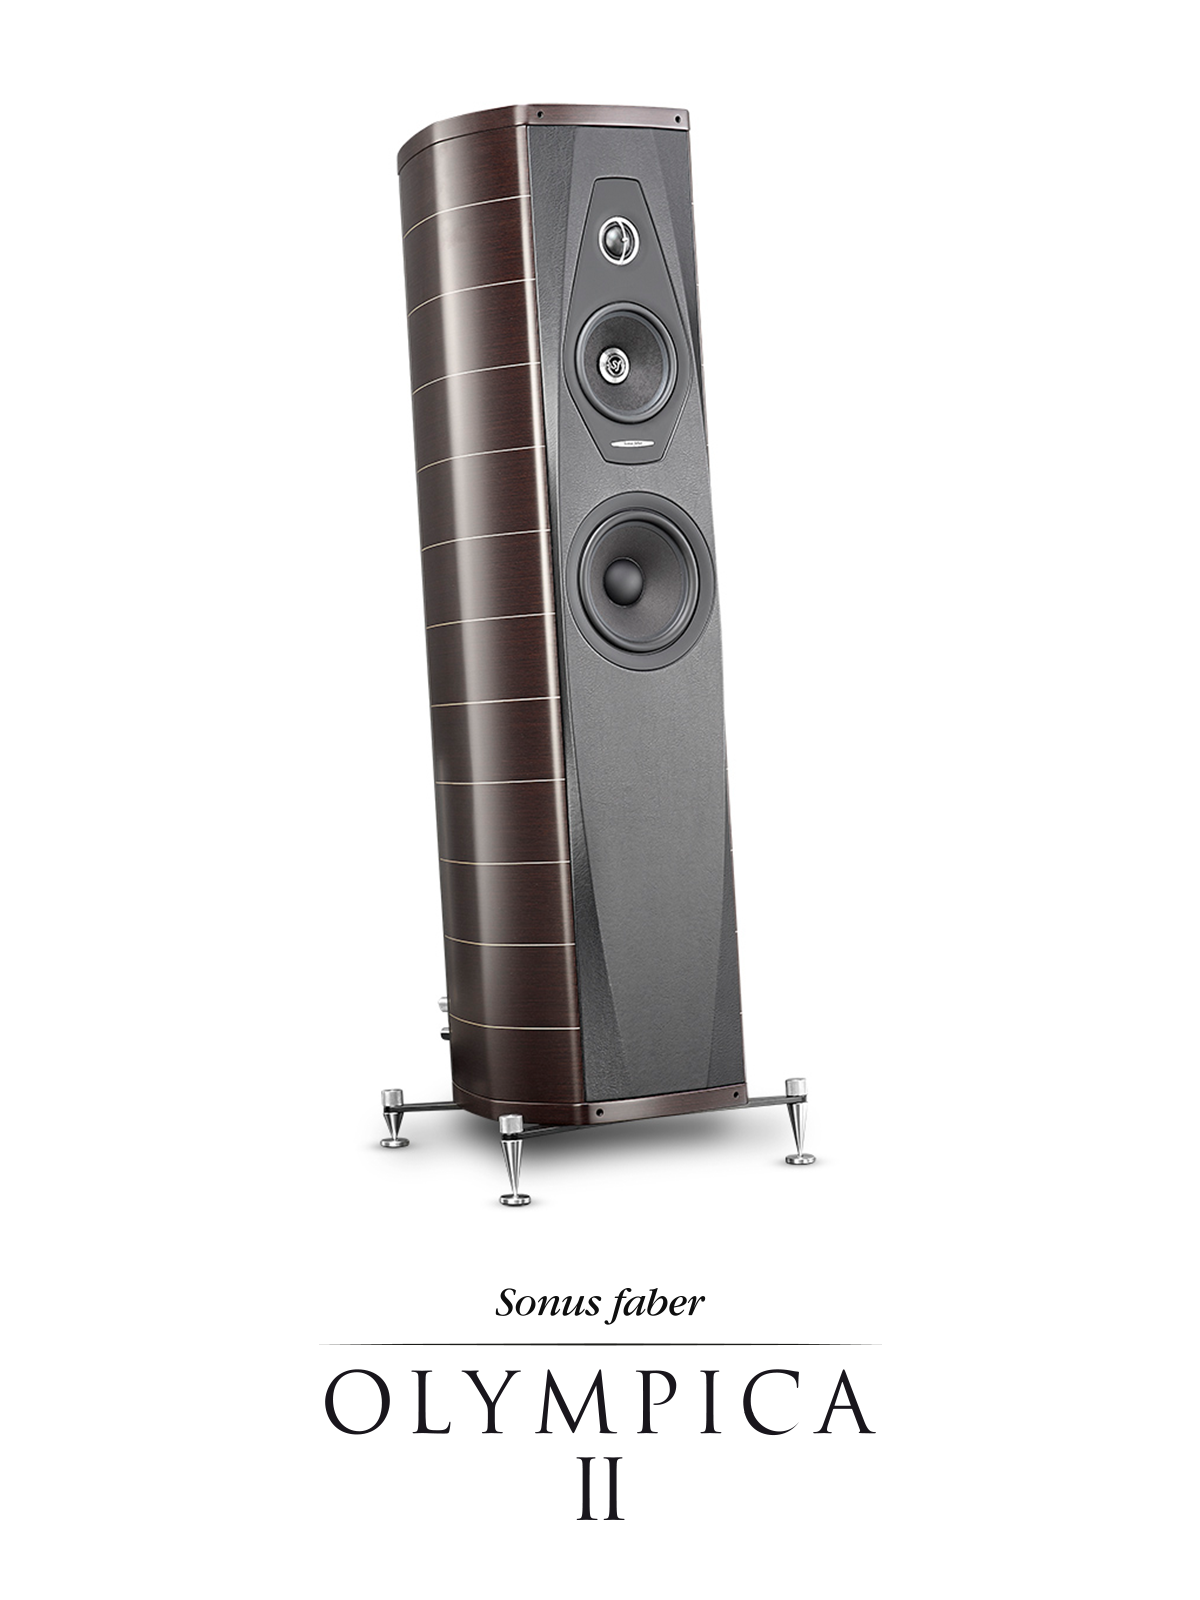 Olimpic II acoustic loudspeakers professional quality and